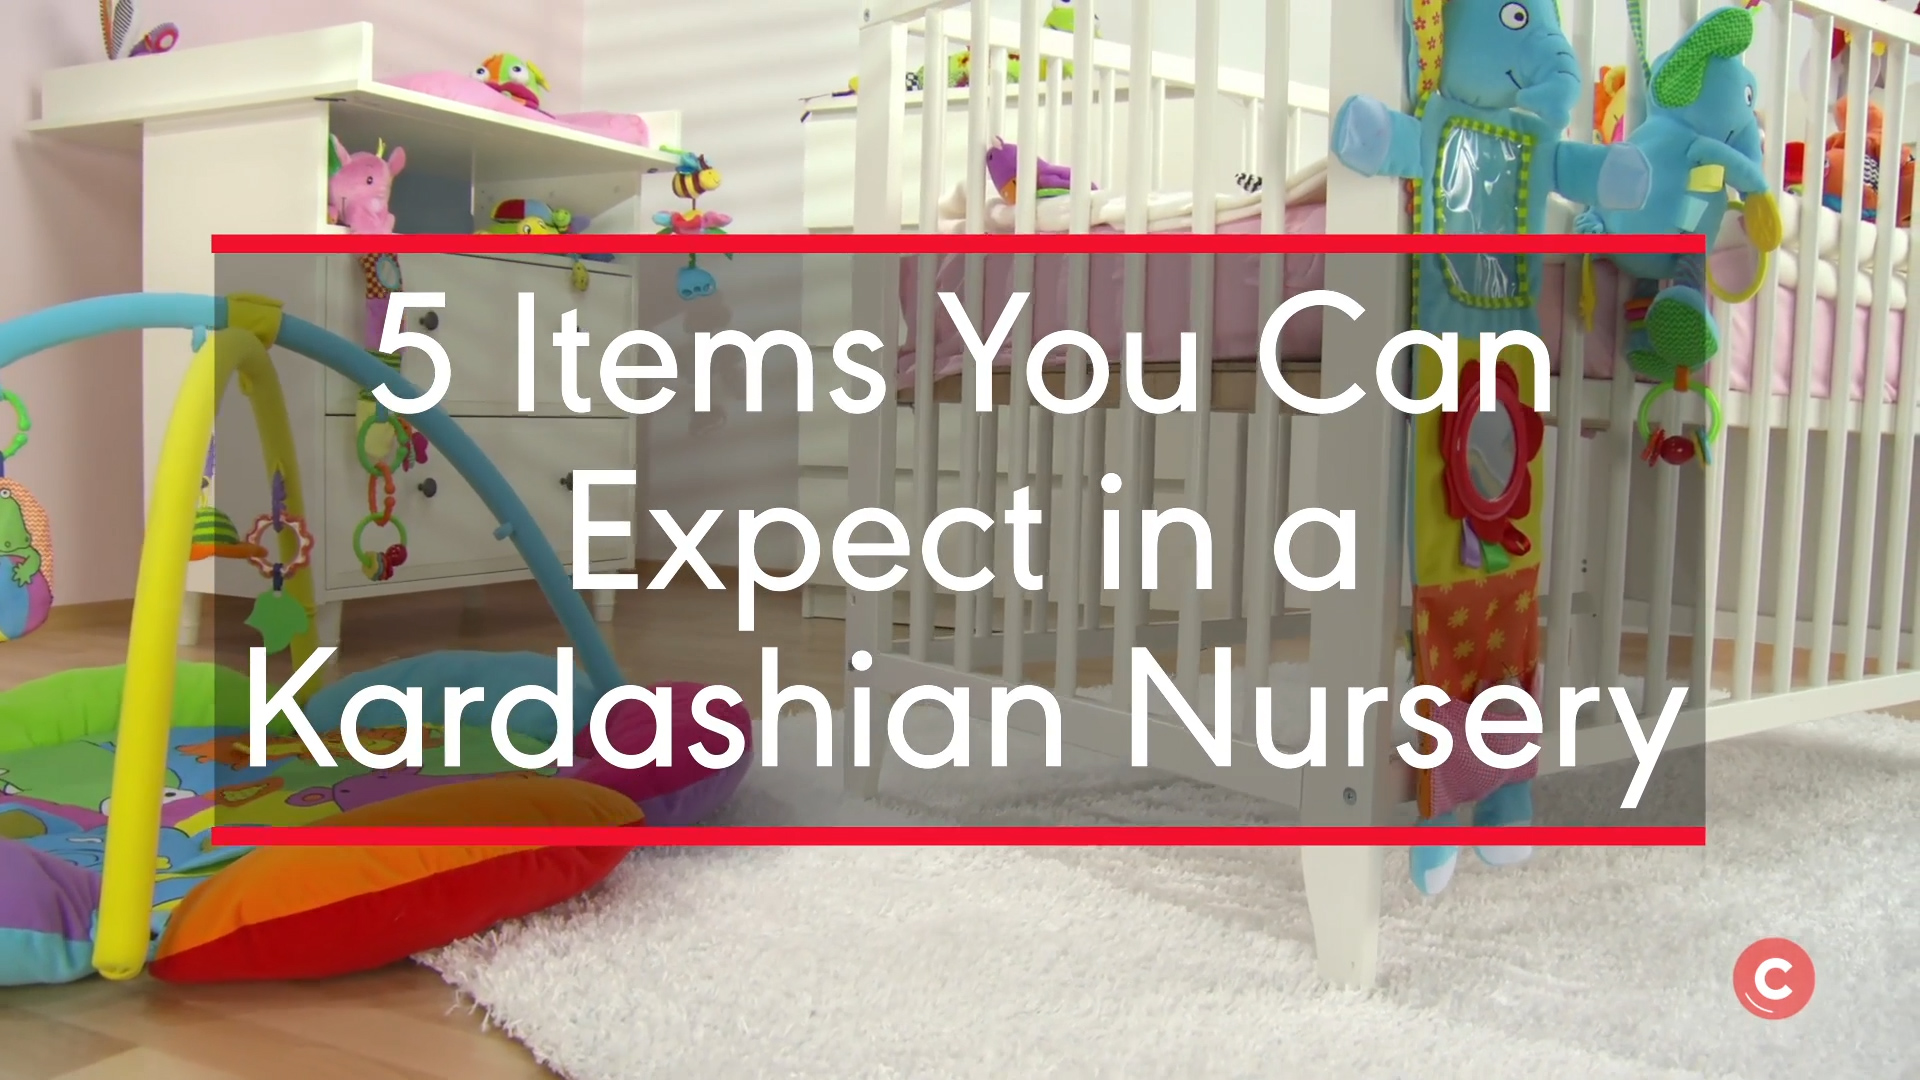 5 Items You Can Expect to Find in a Kardashian Nursery